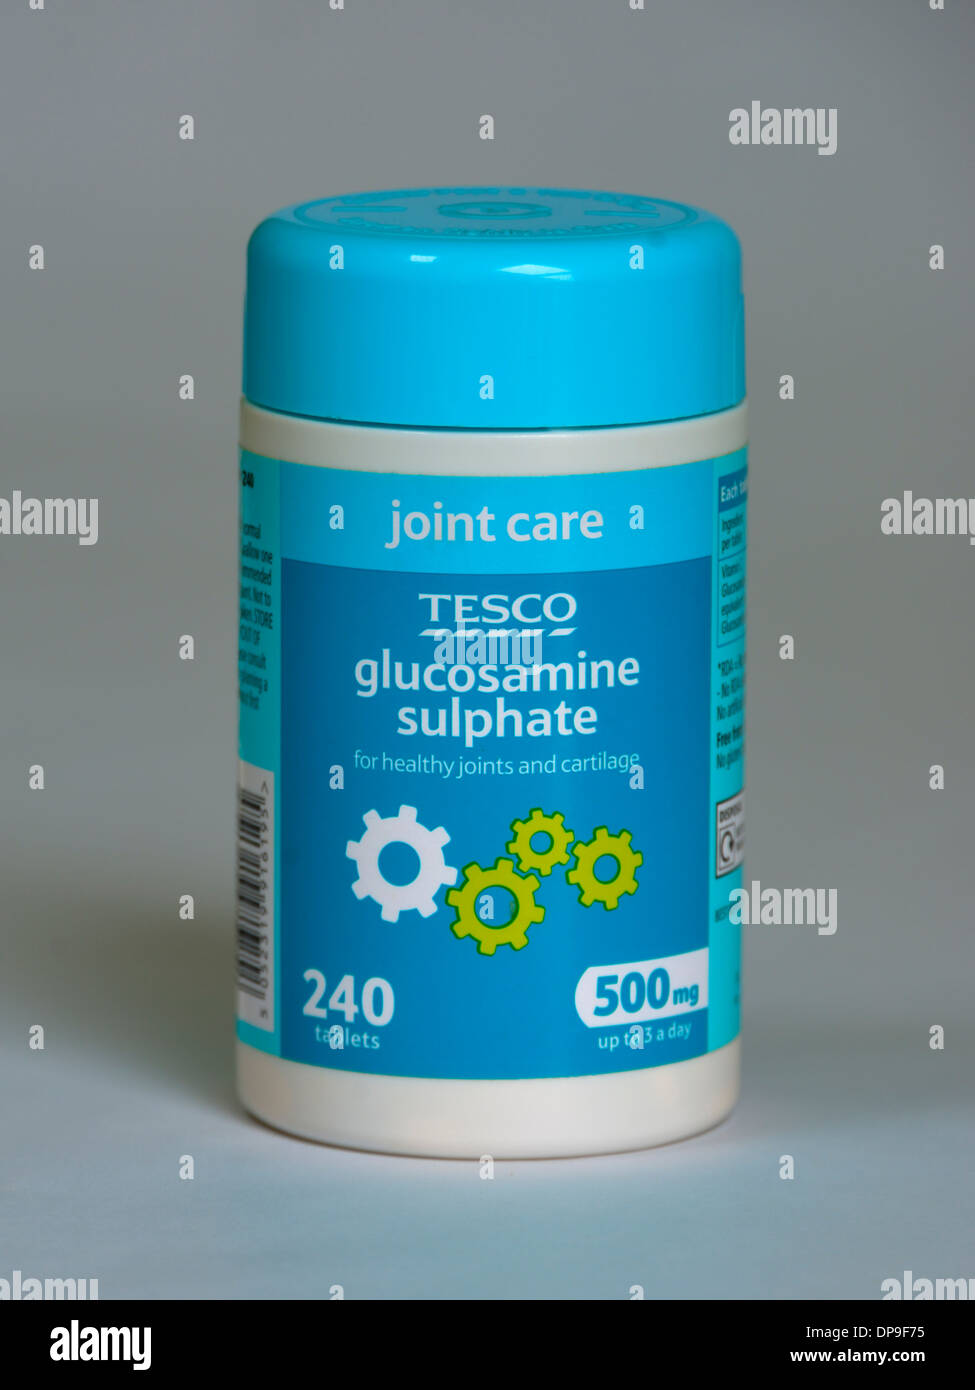 tesco-joint-care-glucosamine-sulphate-for-healthy-joints-and-cartilage-DP9F75.jpg